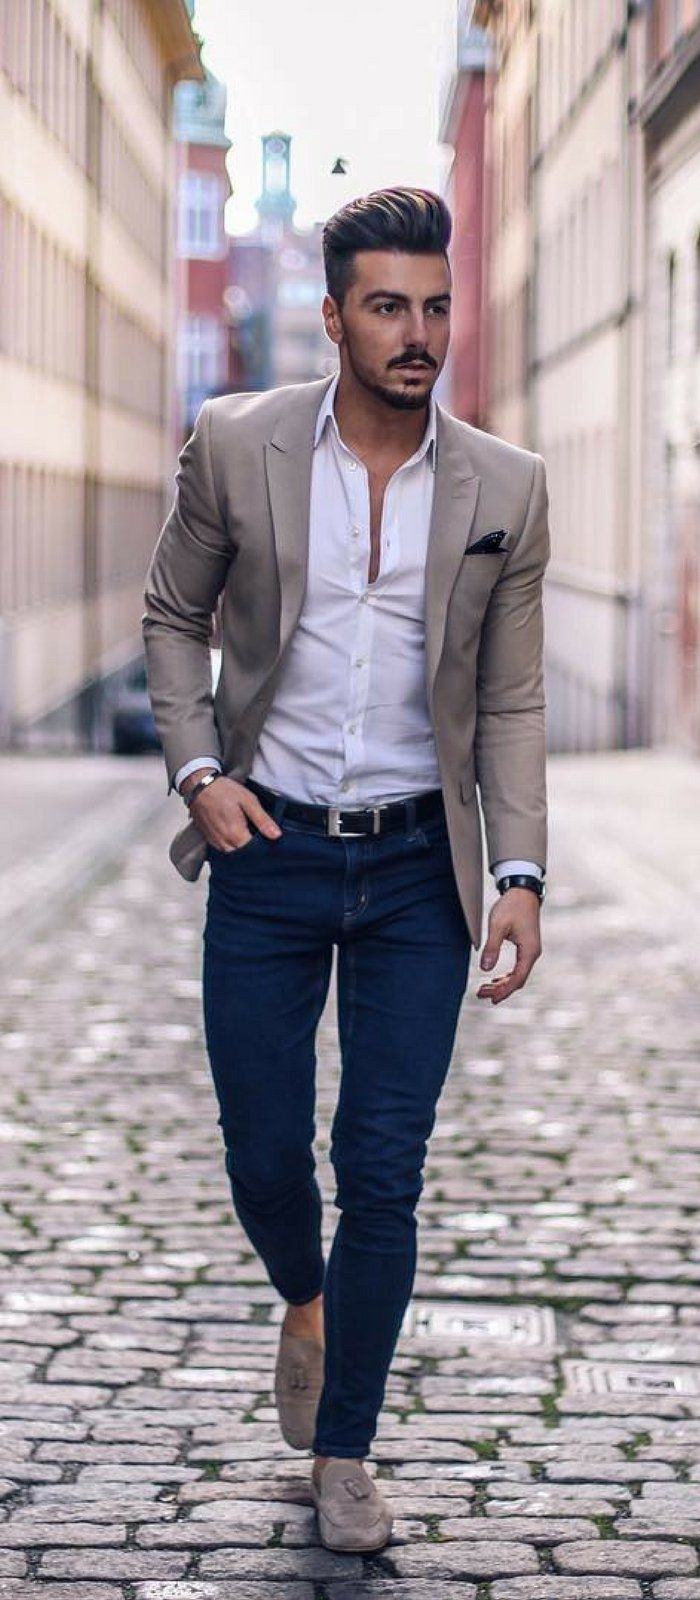 e95ed1b3d 9 Beyond Cool Street Styles Looks For Men in 2019 | Men clothes ...